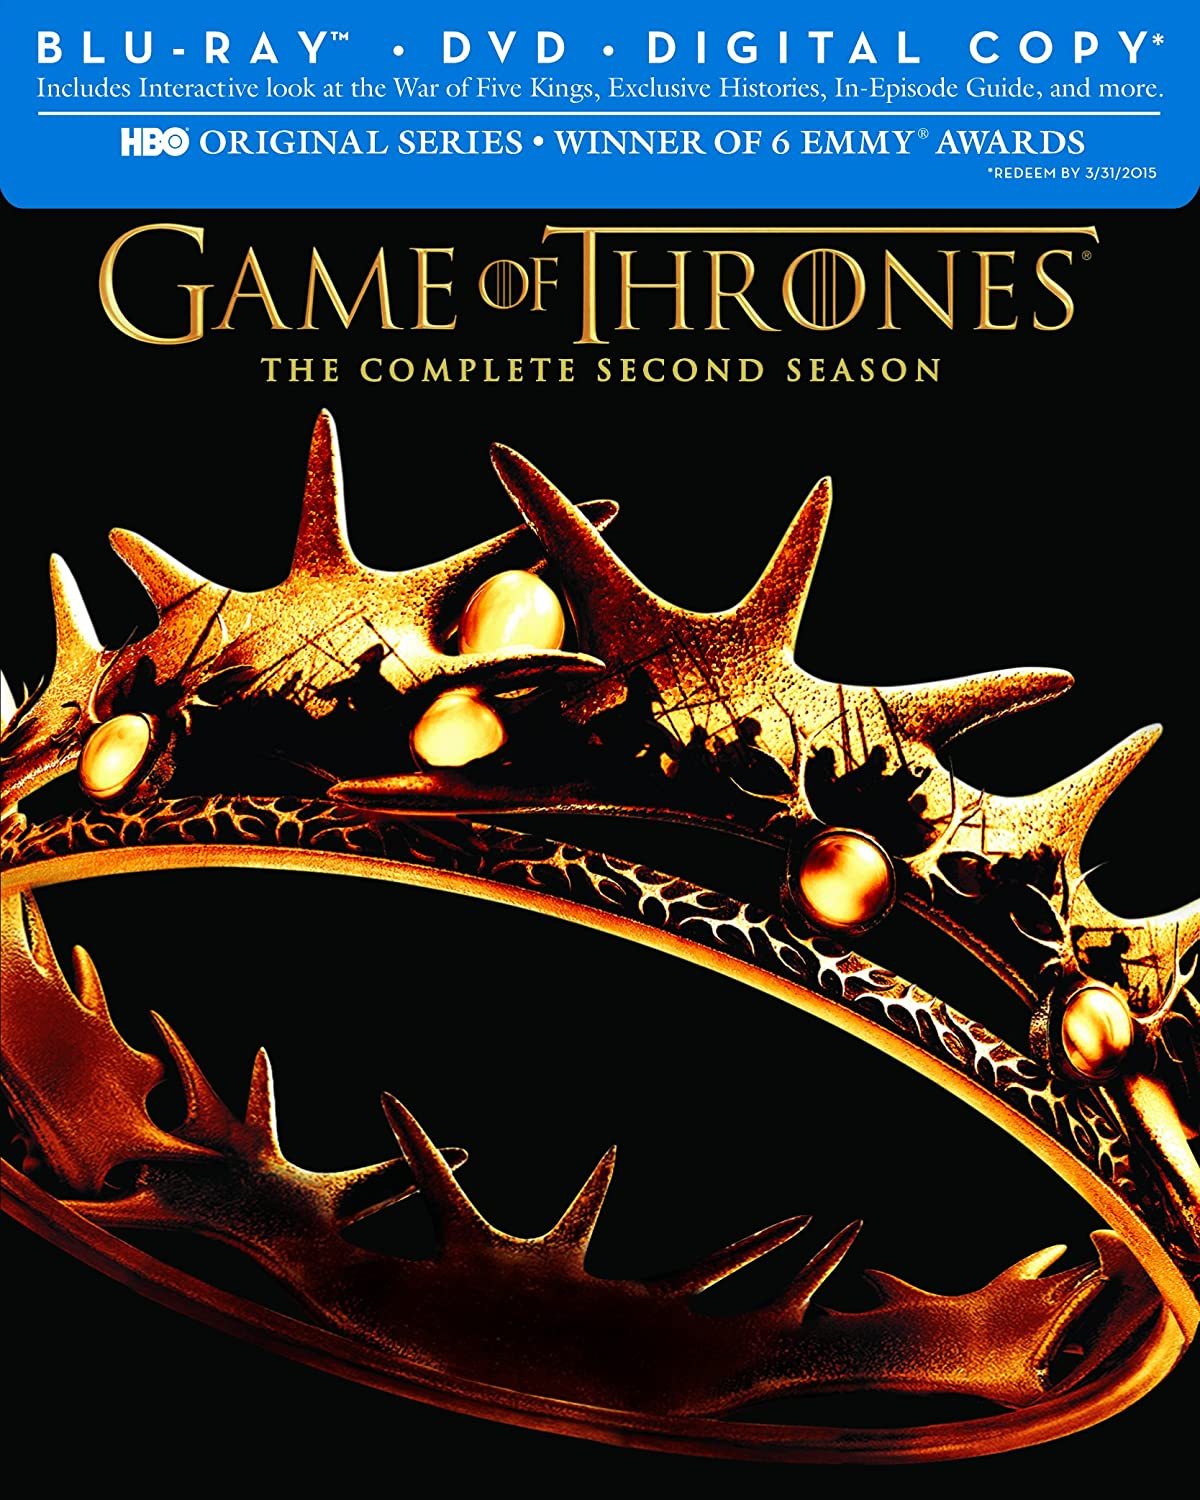 Game of Thrones: The Complete Second Season (Blu-ray/DVD Combo + Digital Copy) $29.99